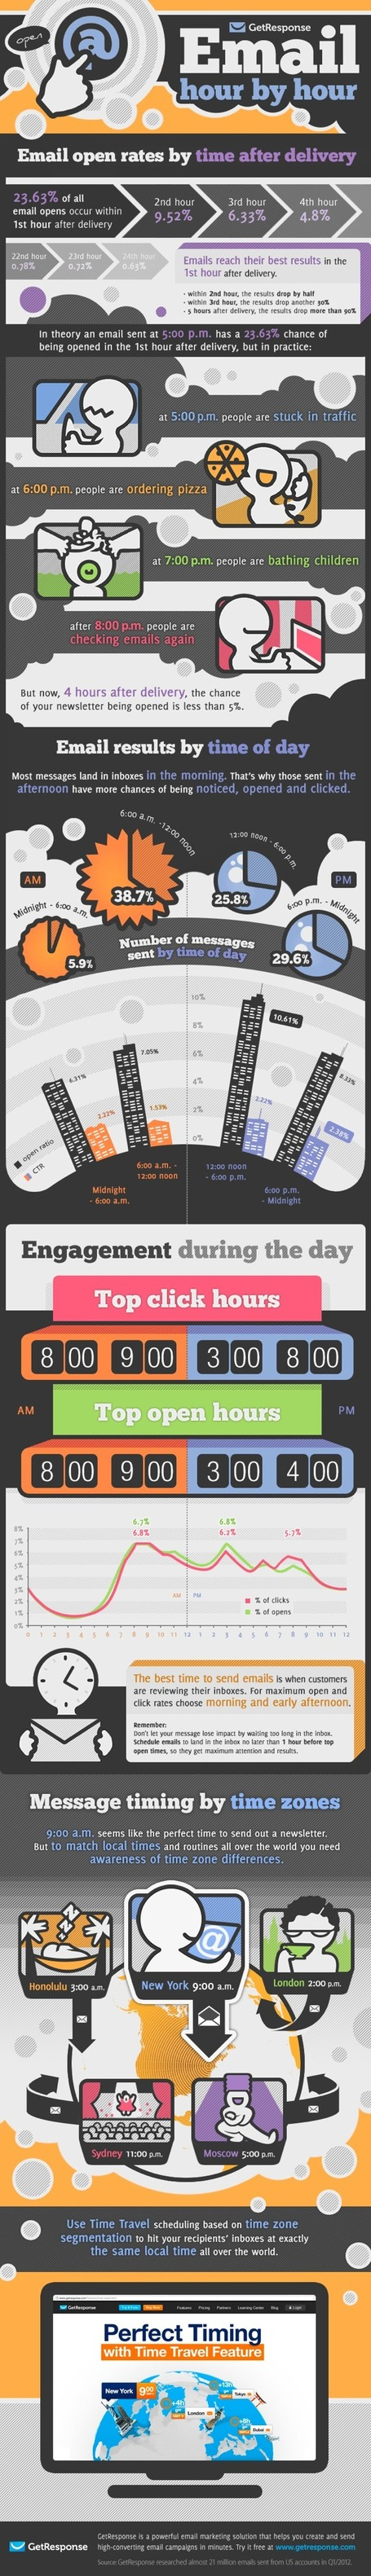 Email Hour By Hour | Digital-By-Design | Scoop.it